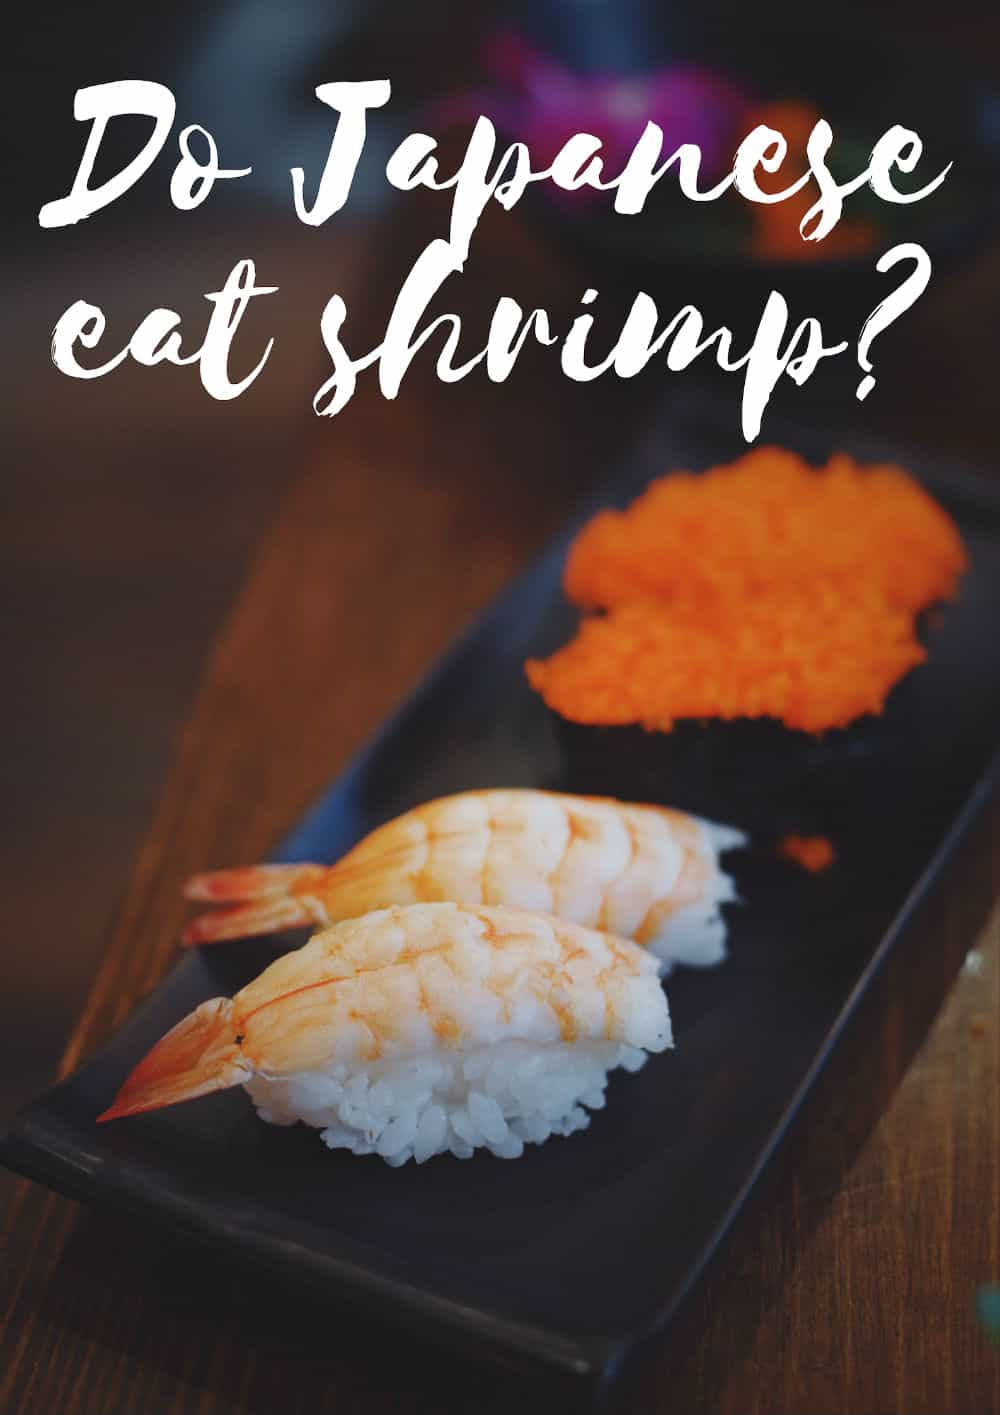 Do Japanese eat shrimp